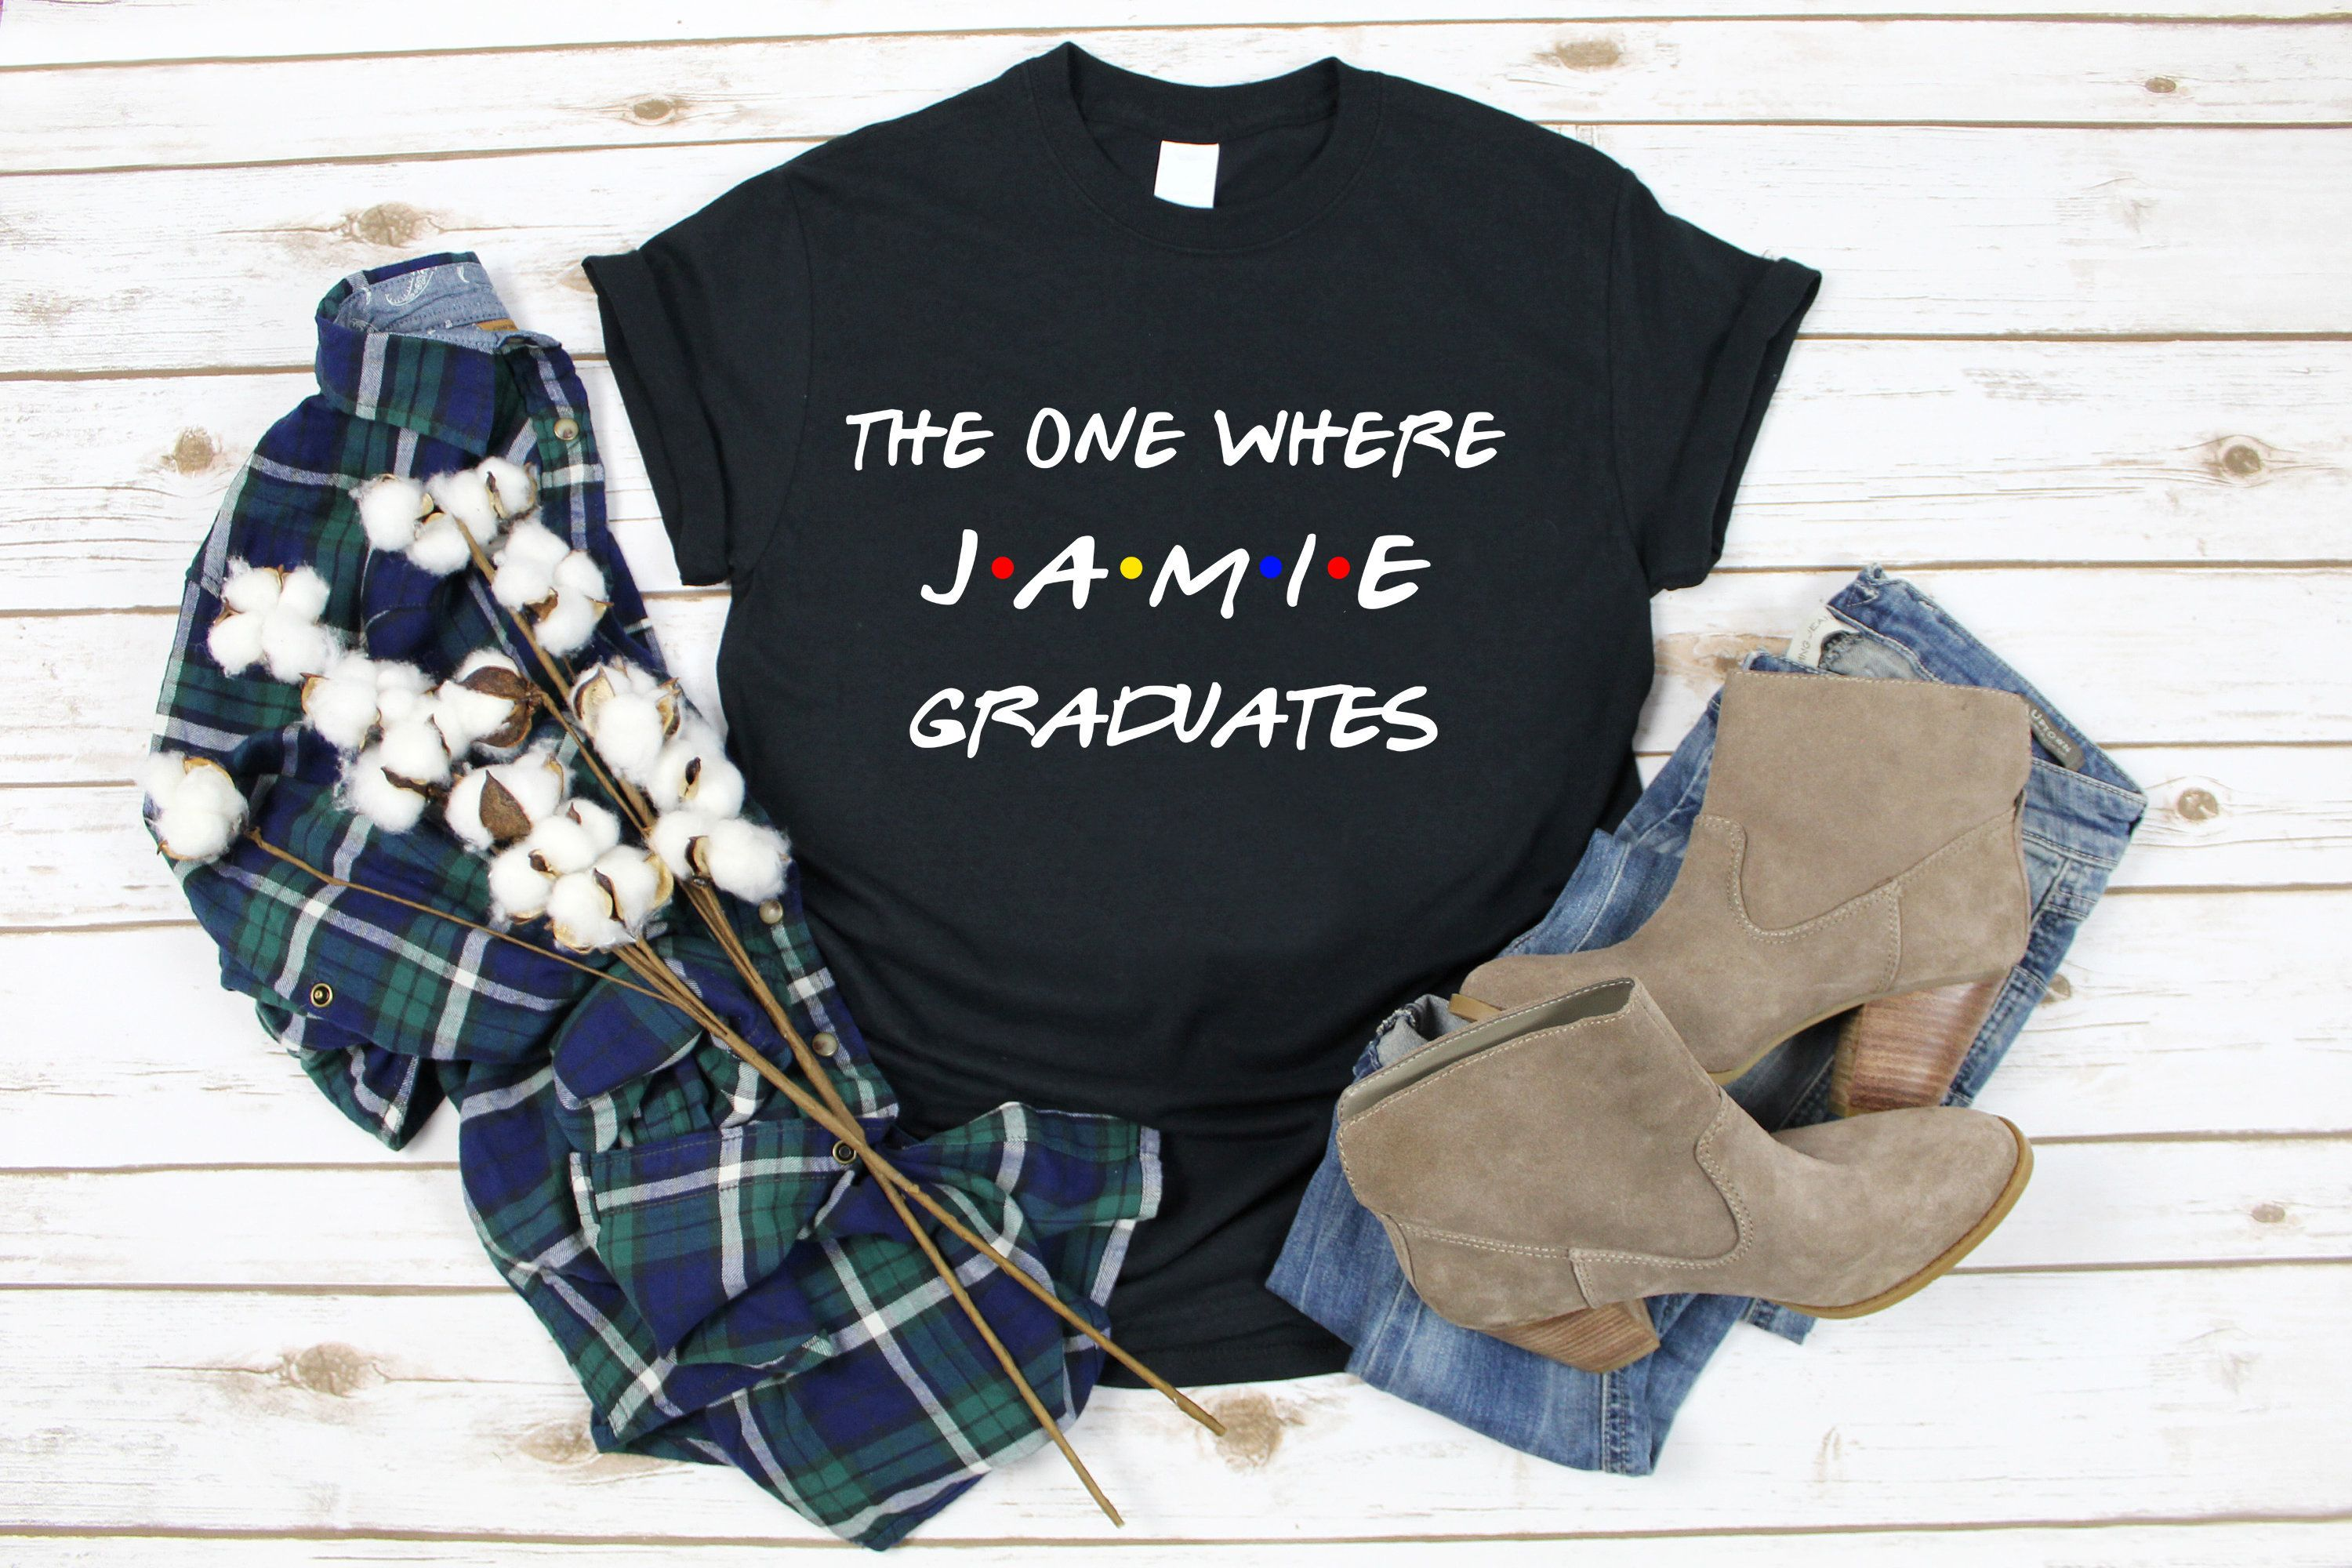 Best Graduation Gifts 2020 The one where NAME graduates shirt, graduation gift, graduation